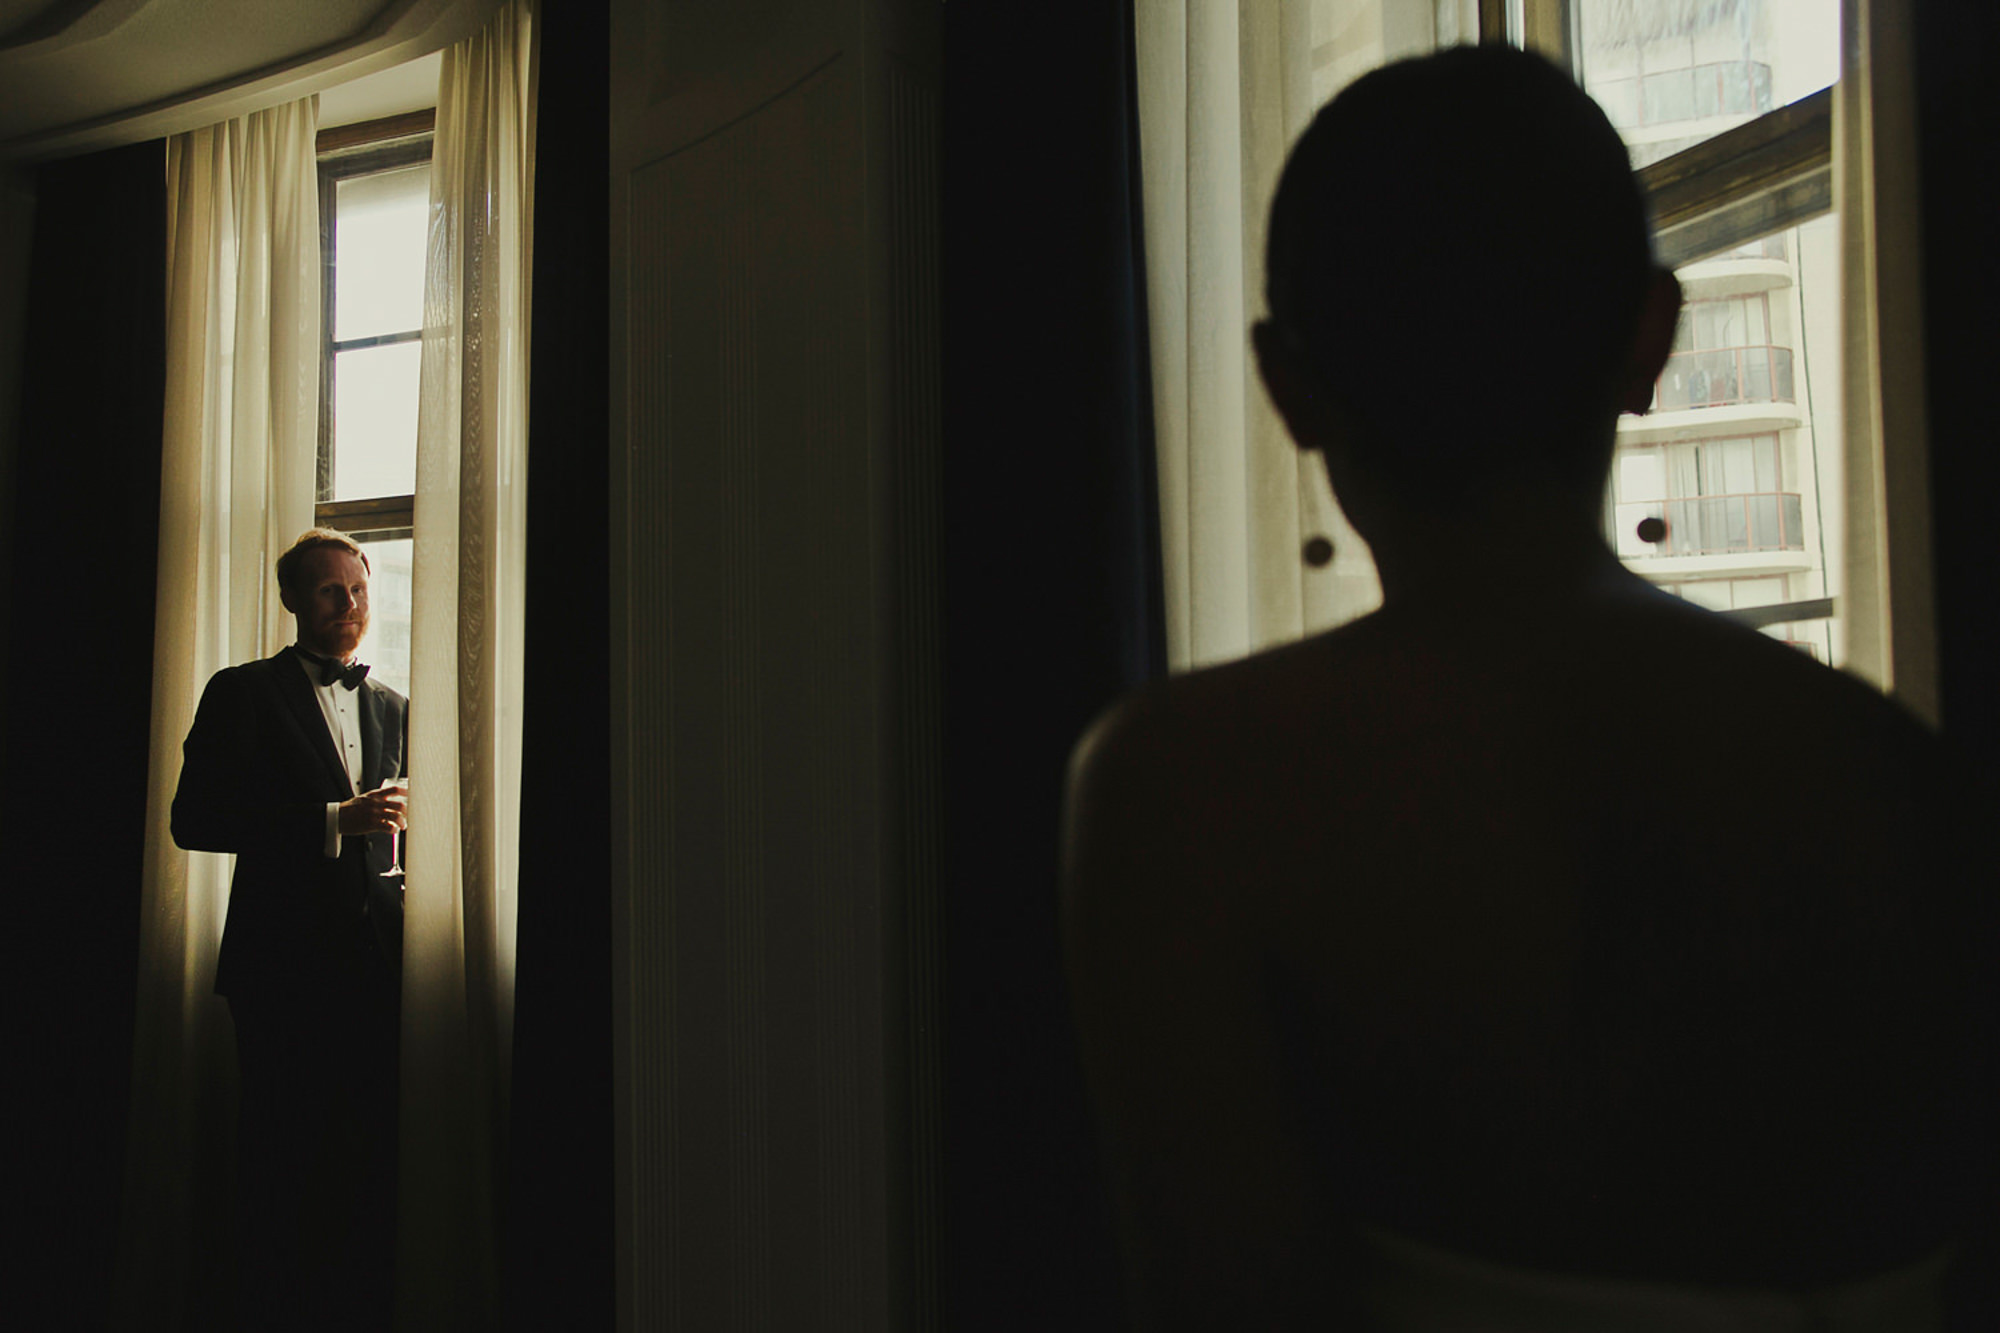 Groom portrait by window with silhouette in forefront - photo by Dan O'Day